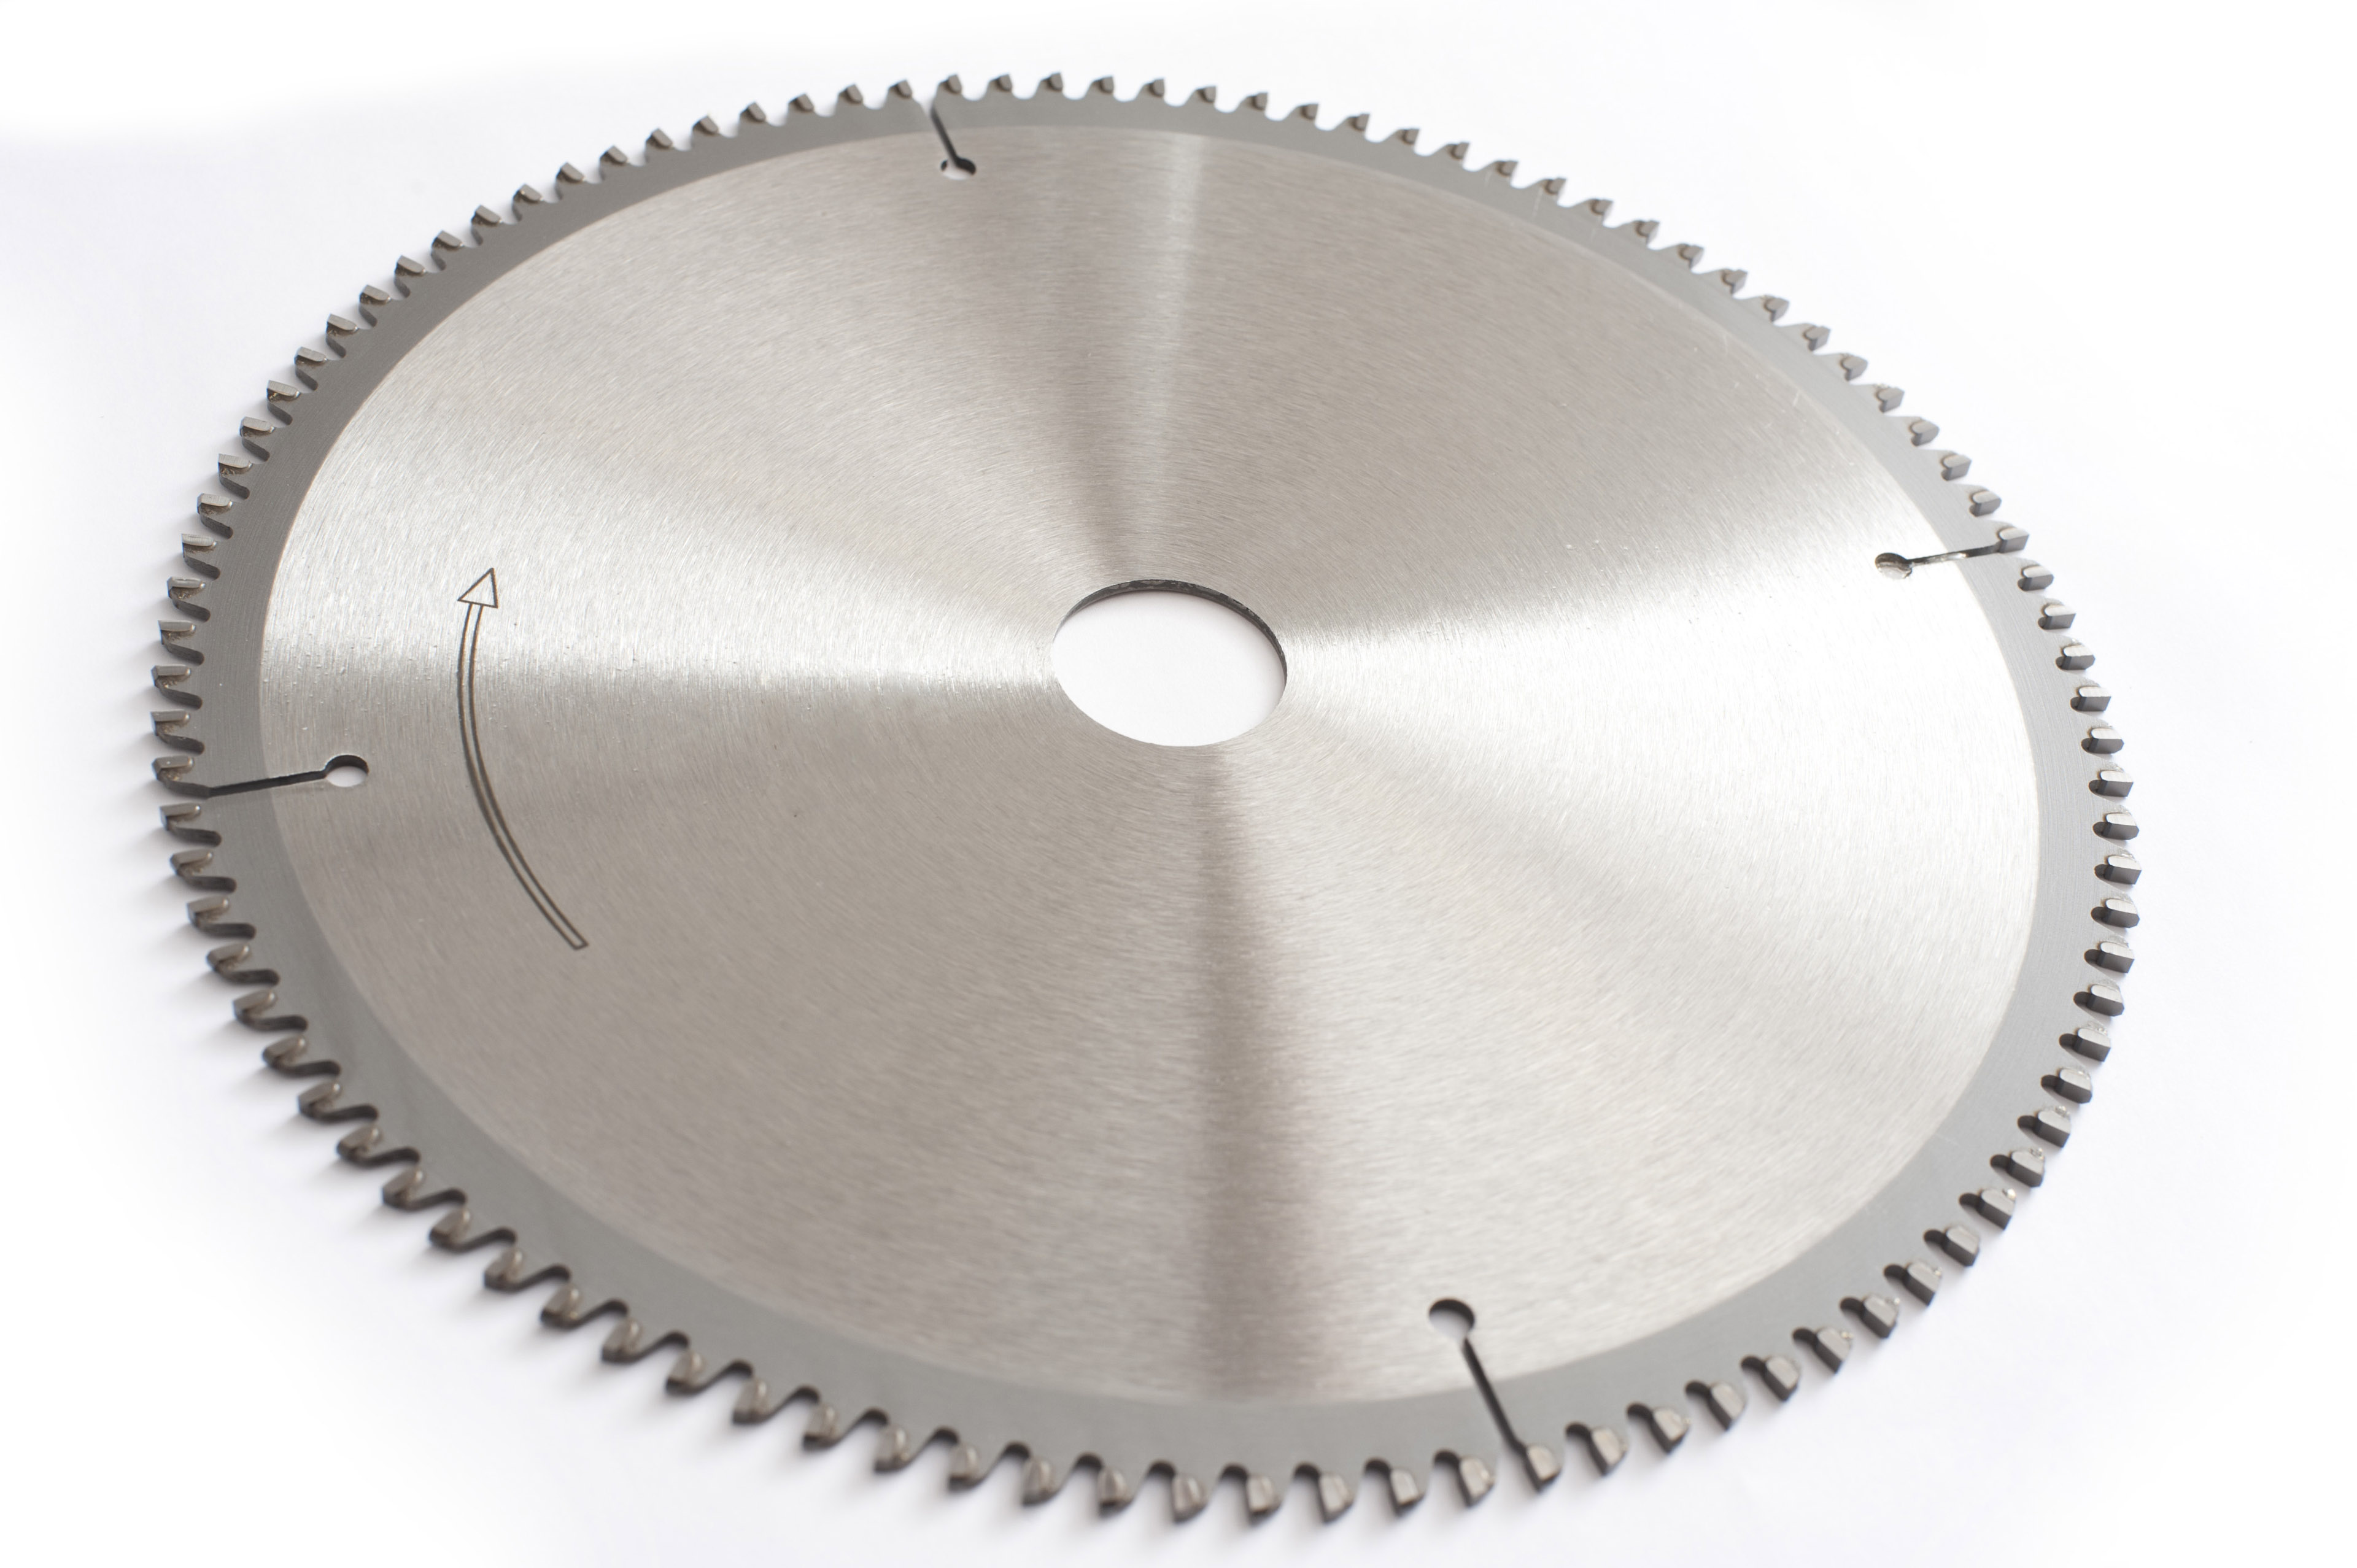 A brand new metal circular saw blade with sharp teeth isolated on a white background with copy space.